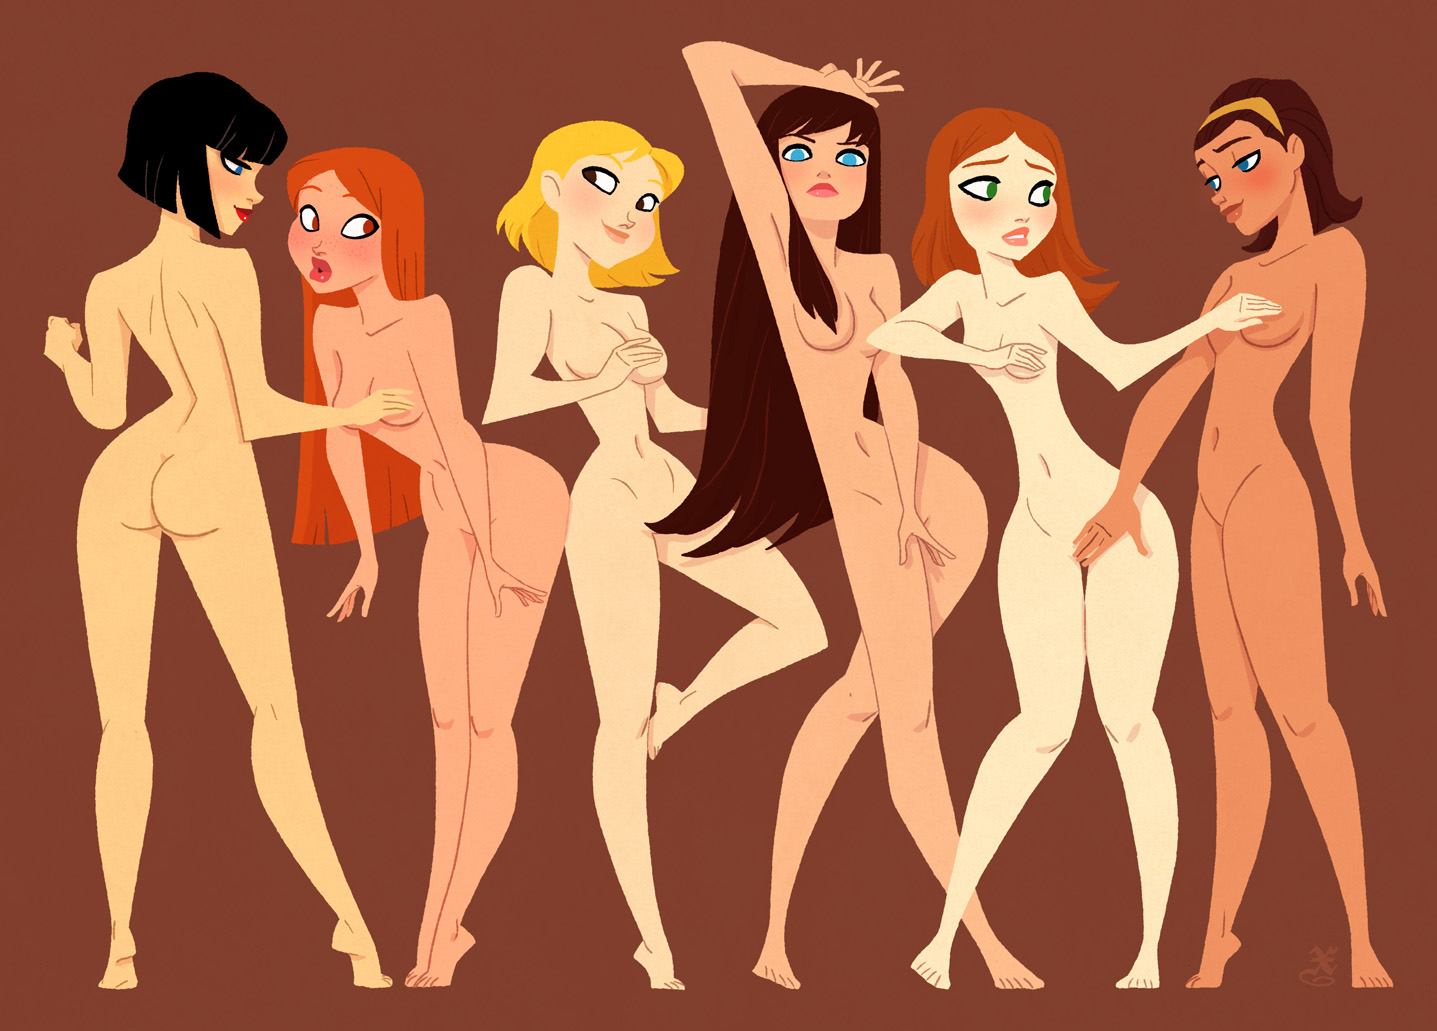 Hot sexy naked girls cartoon smut images